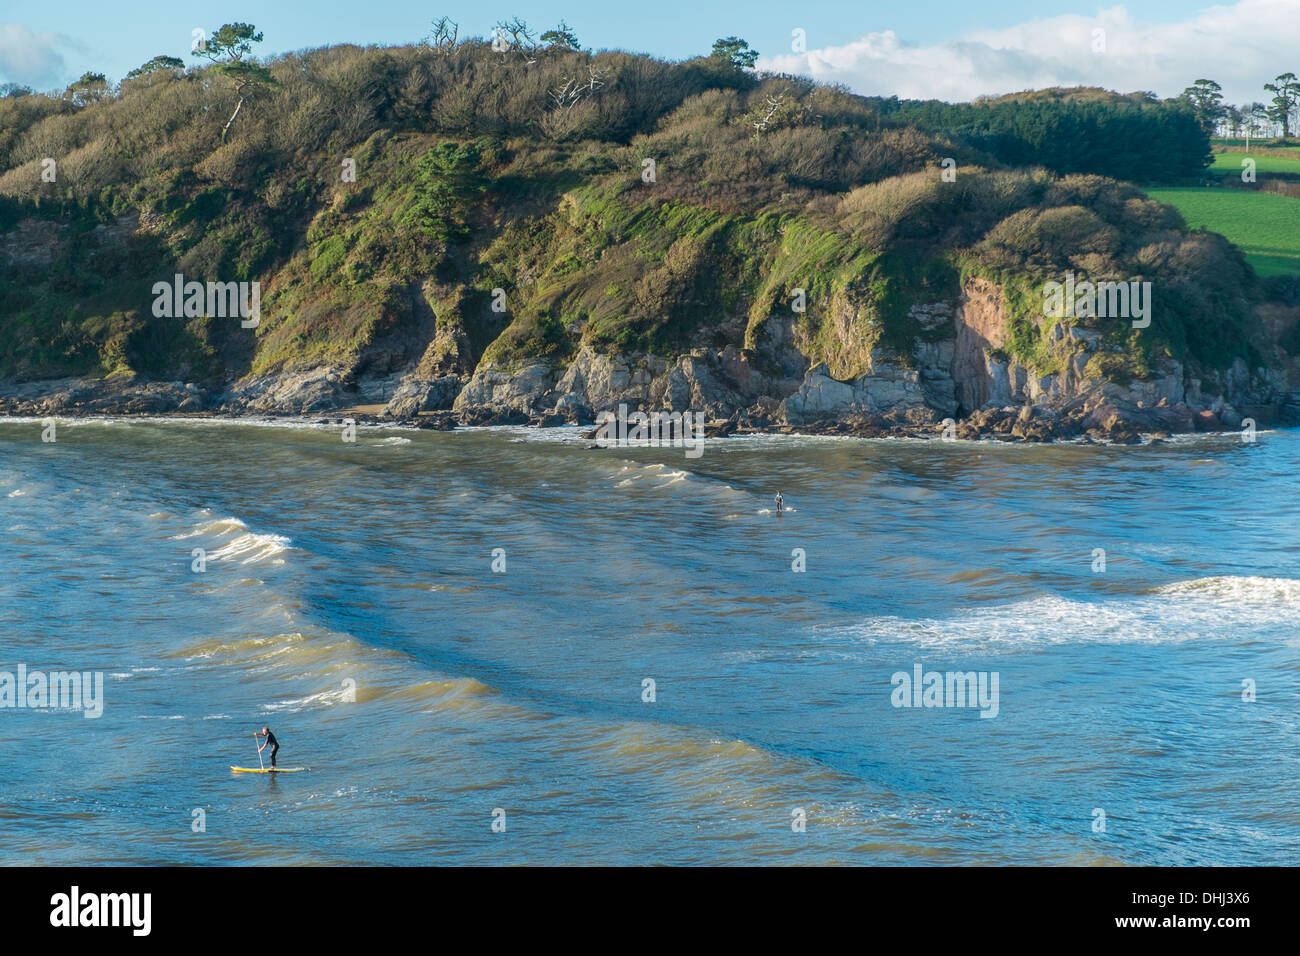 Stand up paddle boarders in the mouth of the River Erme, South Hams. Devon. UK - Stock Image